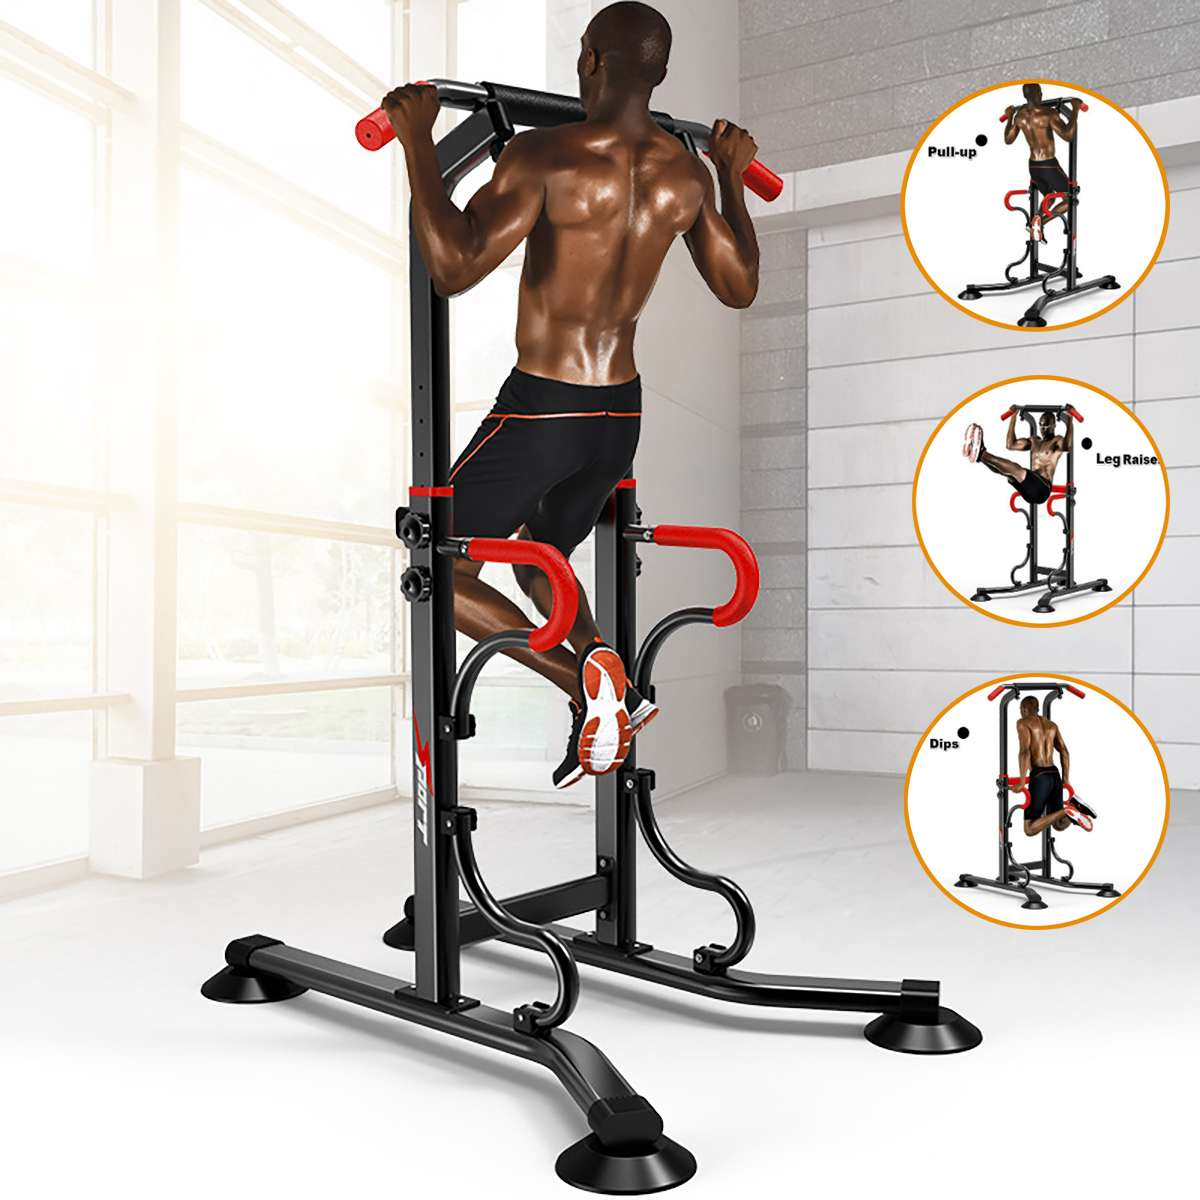 Power Tower - Chin Up Pull Up Multi-Grip Bar Station - Dip - VKR Knee Raise Indoor Outdoor Gym